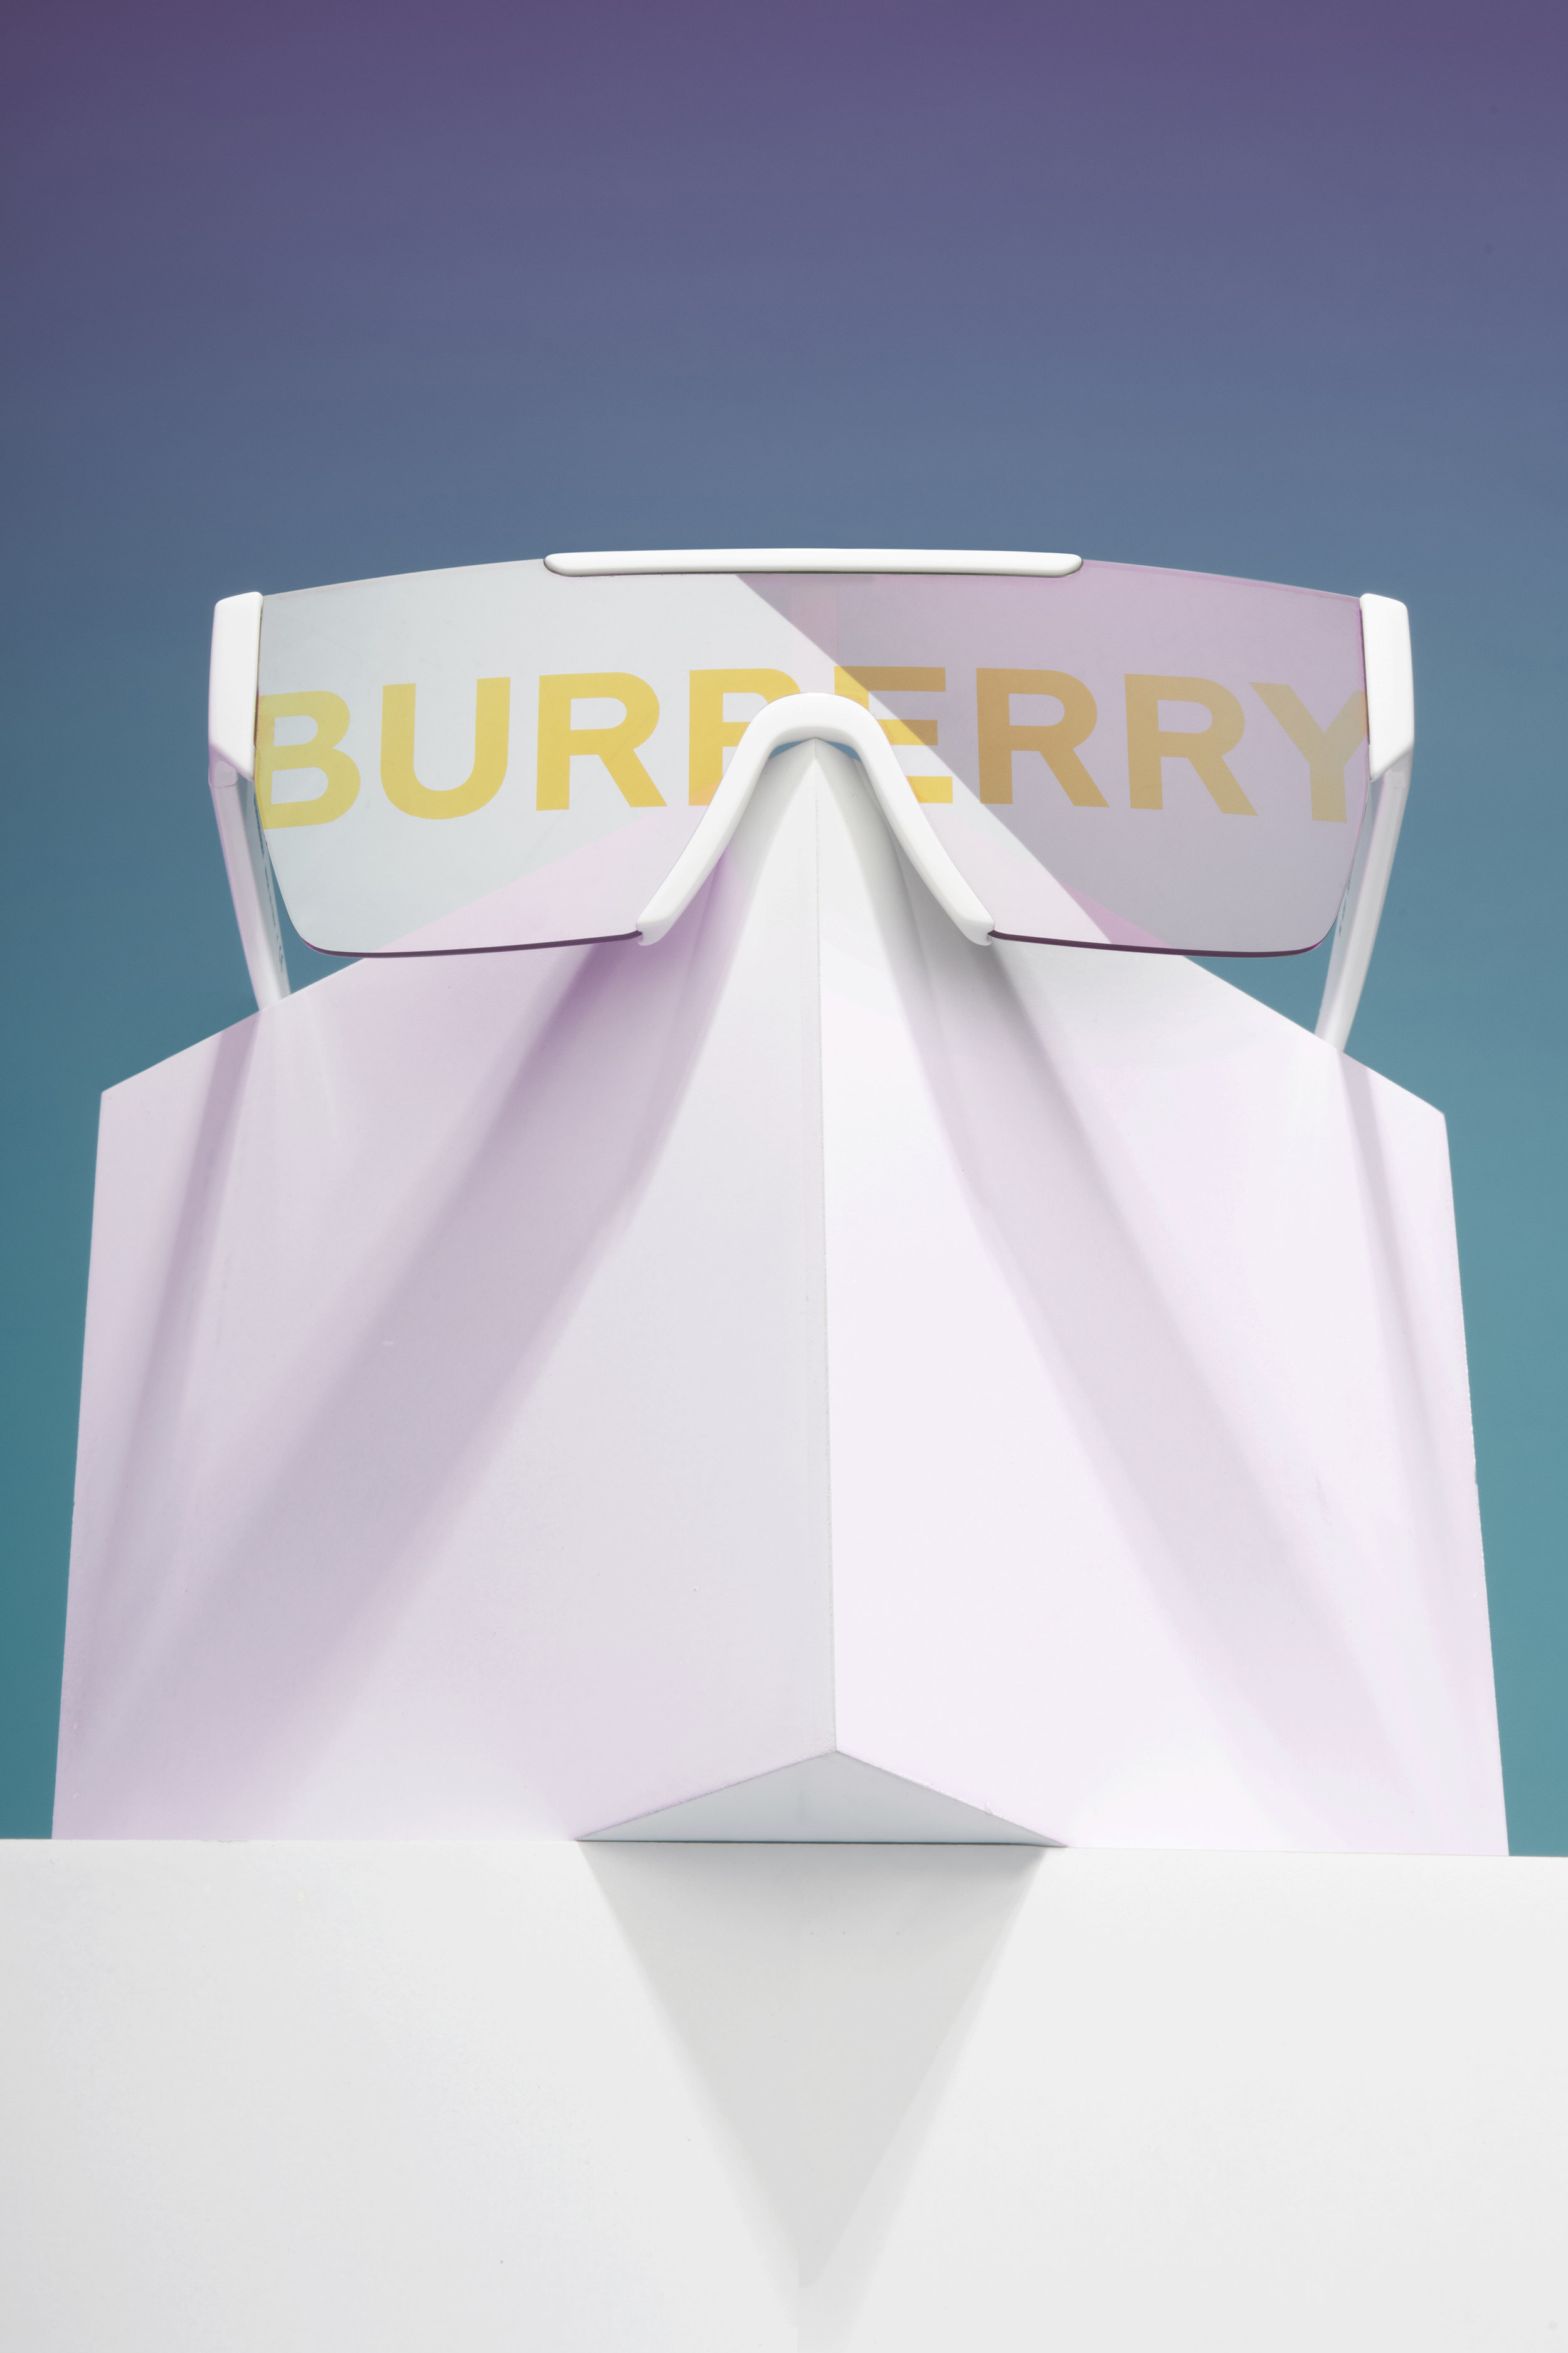 Burberry-Sunglass-1-web.jpg